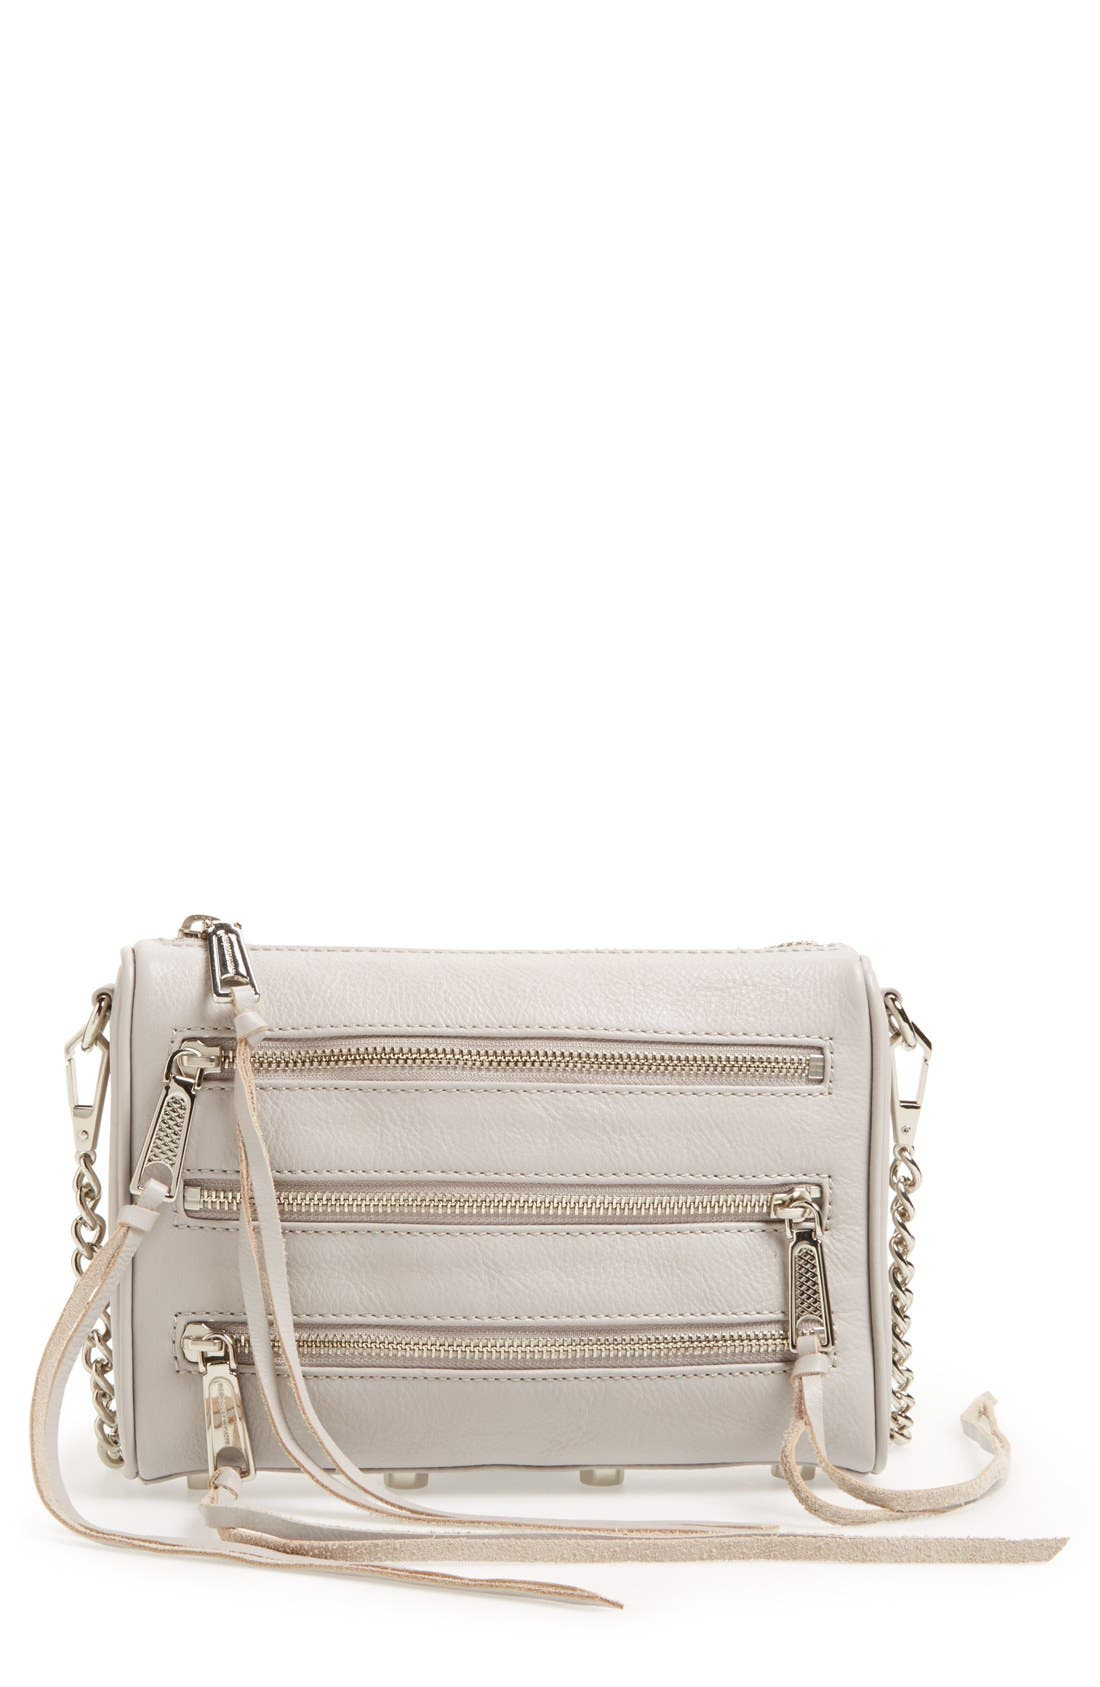 Main Image - Rebecca Minkoff Mini 5 Zip Convertible Crossbody Bag